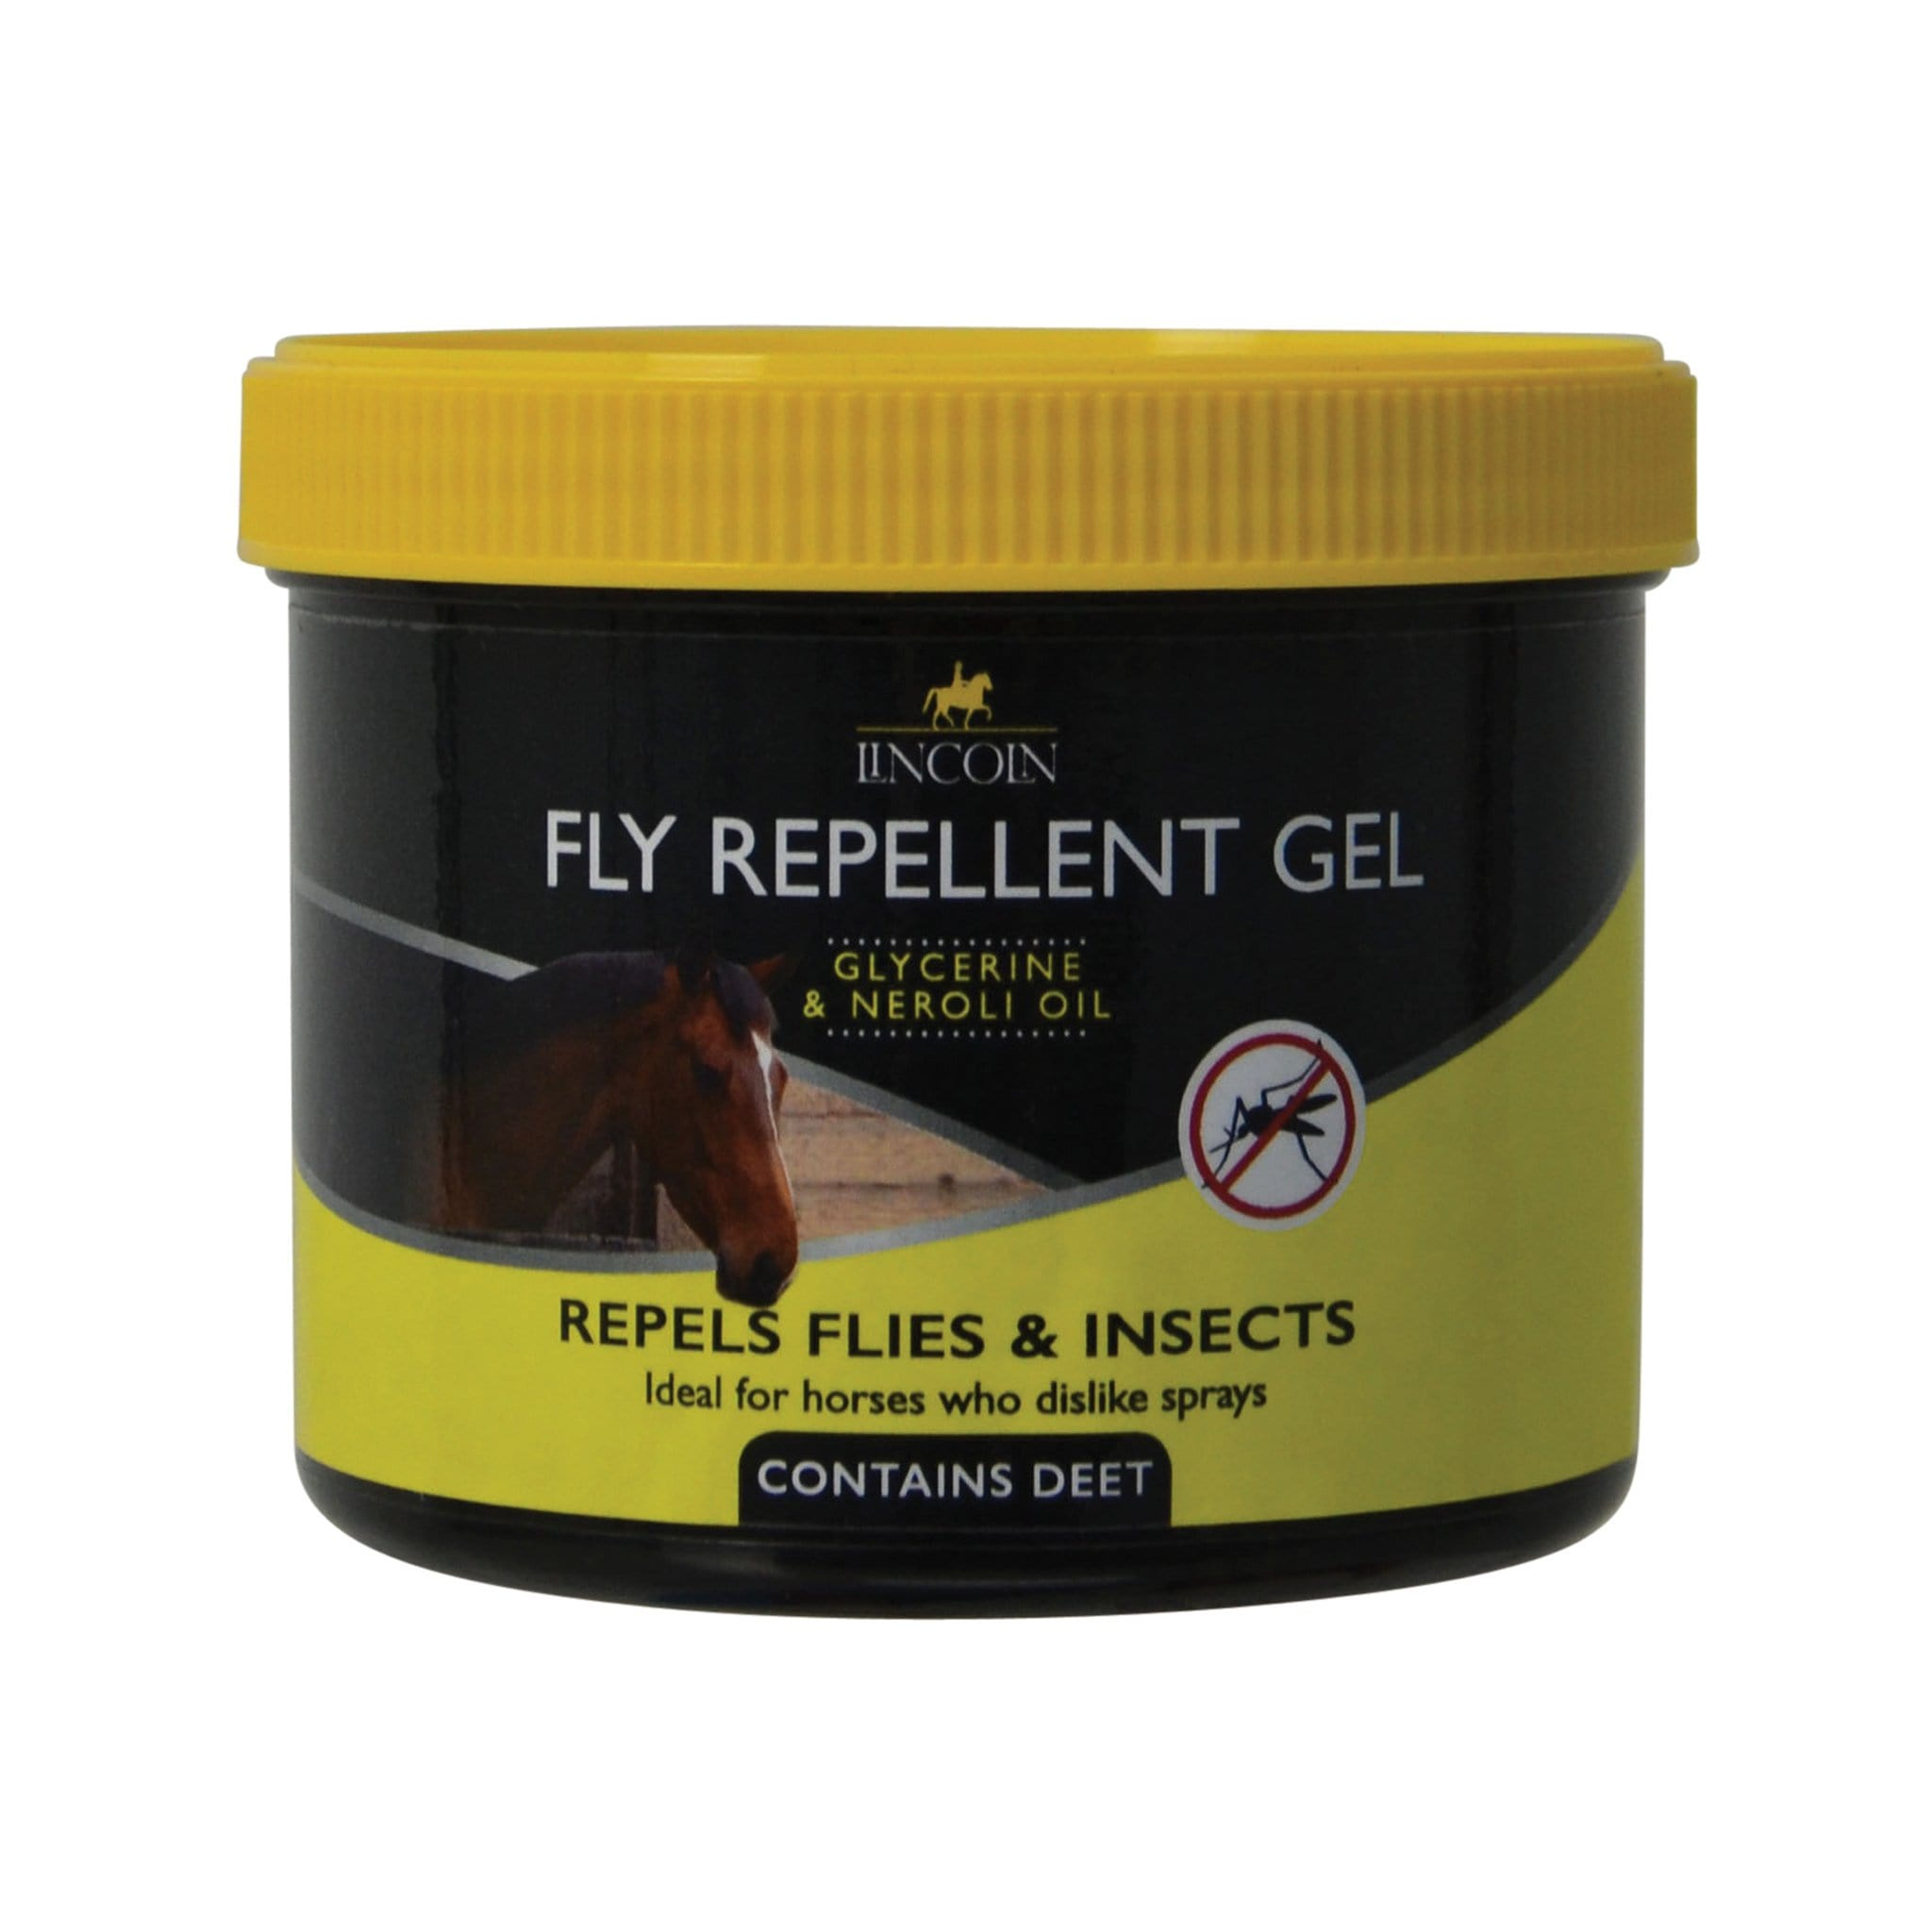 Lincoln Fly Repellent Gel 4098